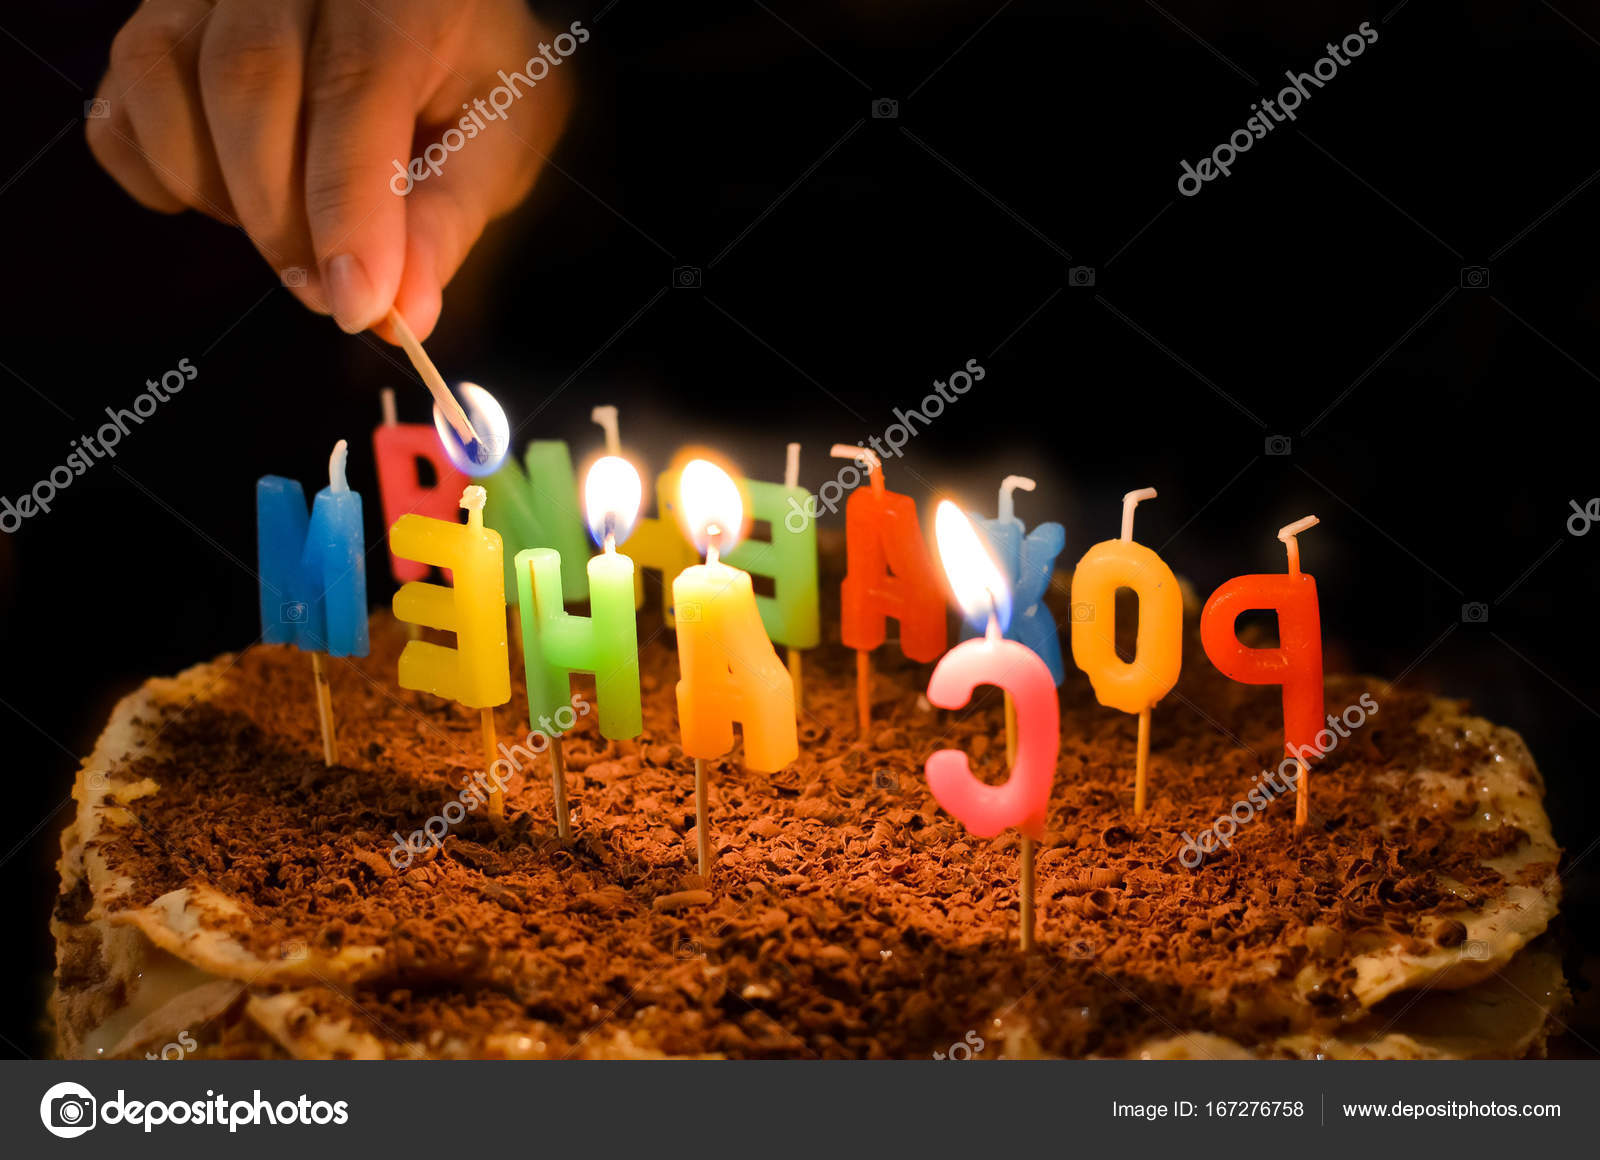 Astonishing Happy Birthday Cake On Fire Happy Birthday Cake With Fire Birthday Cards Printable Nowaargucafe Filternl